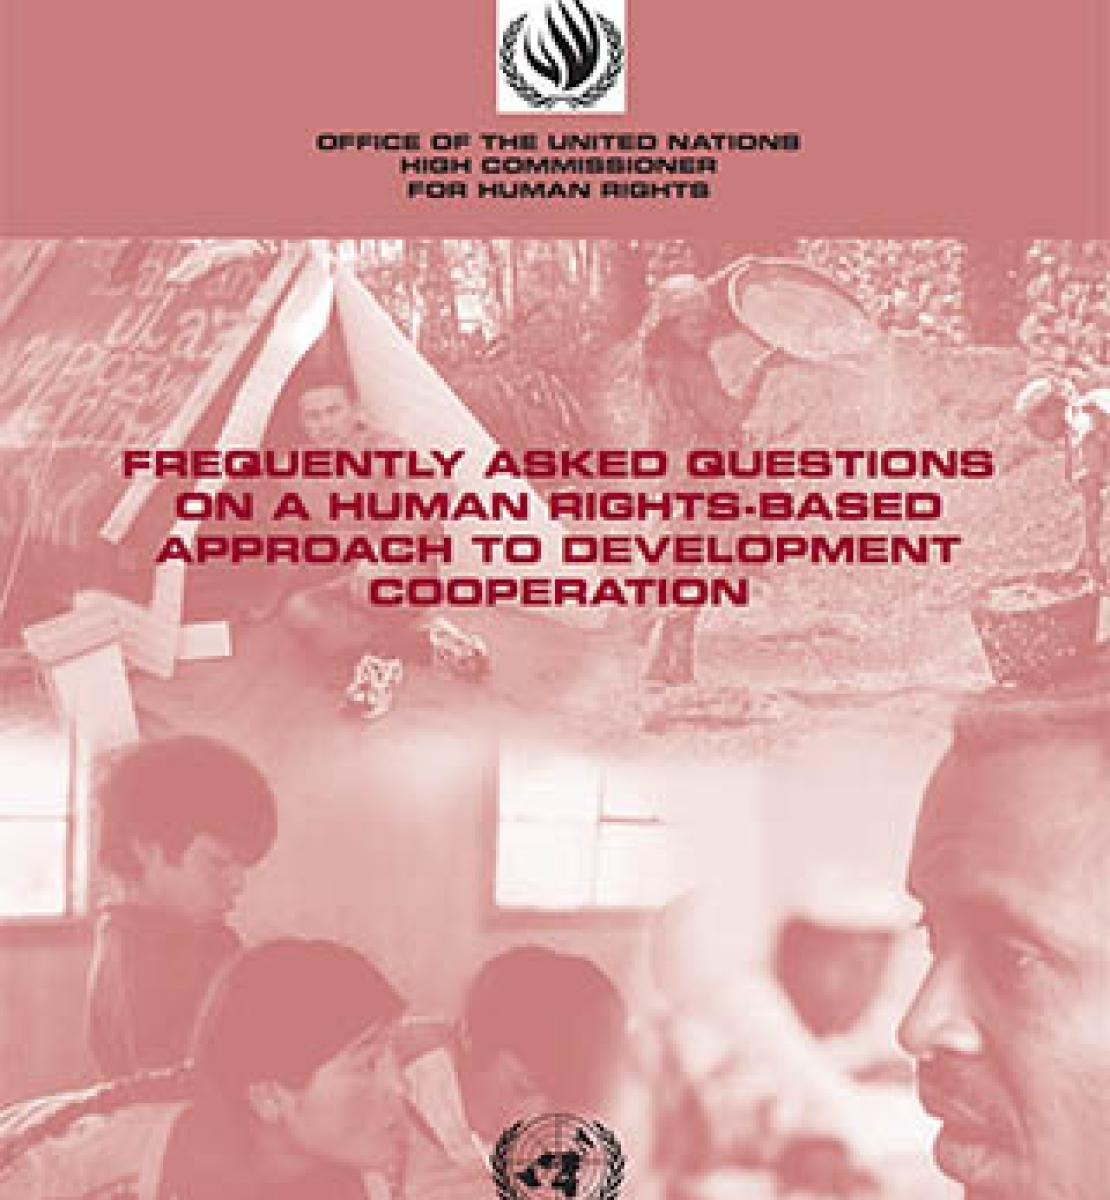 Frequently asked questions on a human rights-based approach to development cooperation